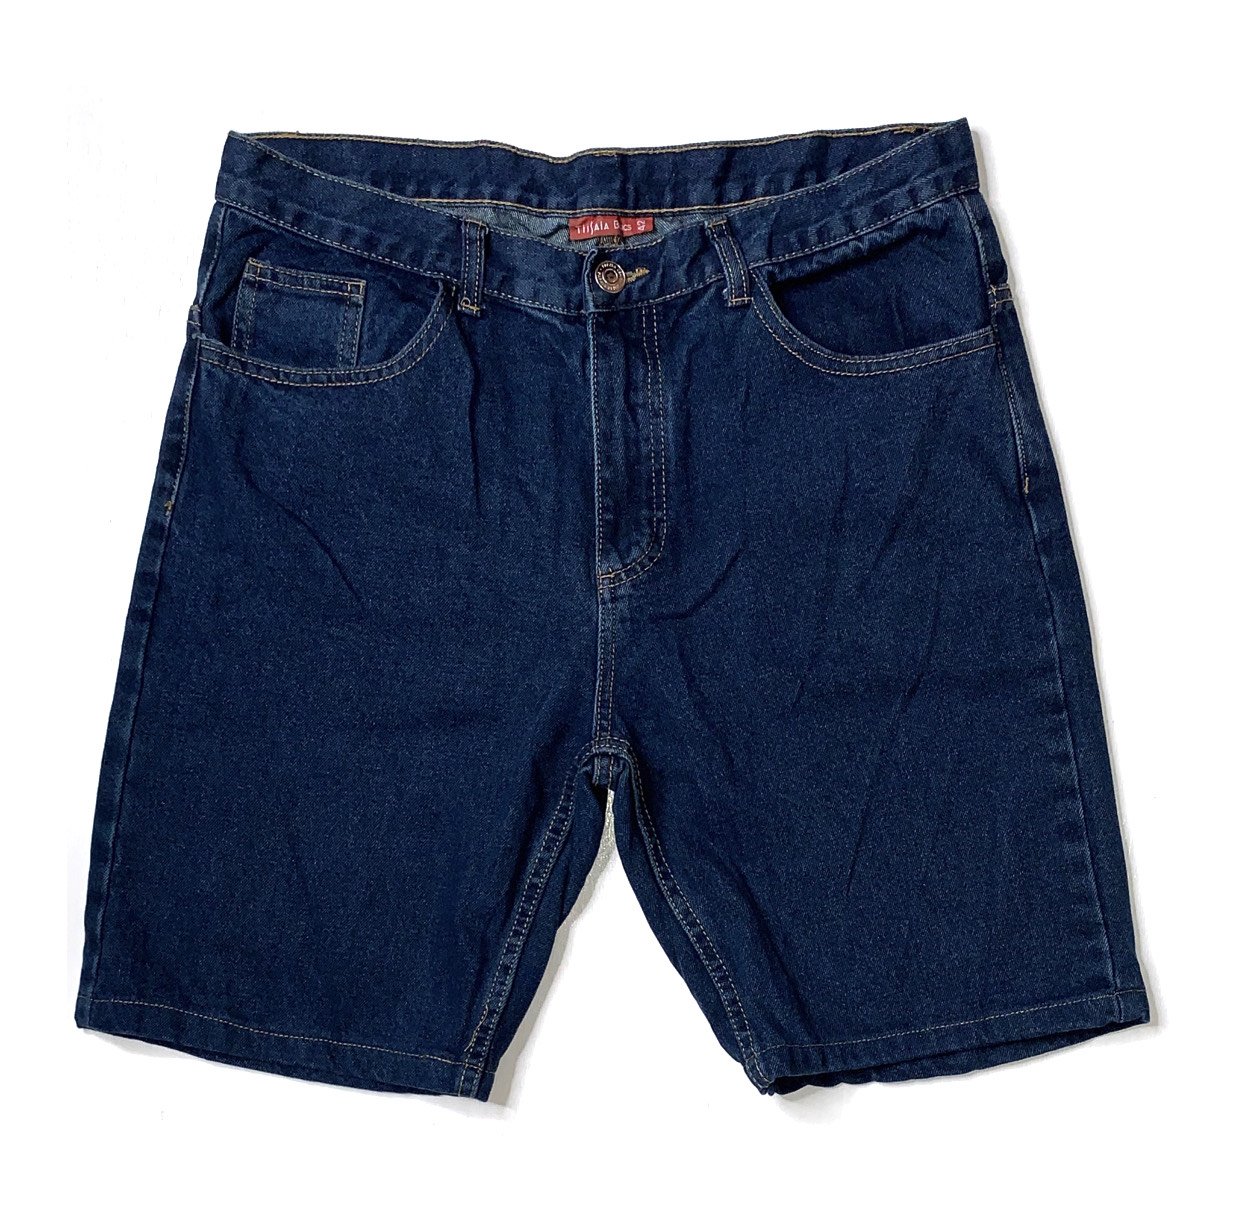 basic denim shorts